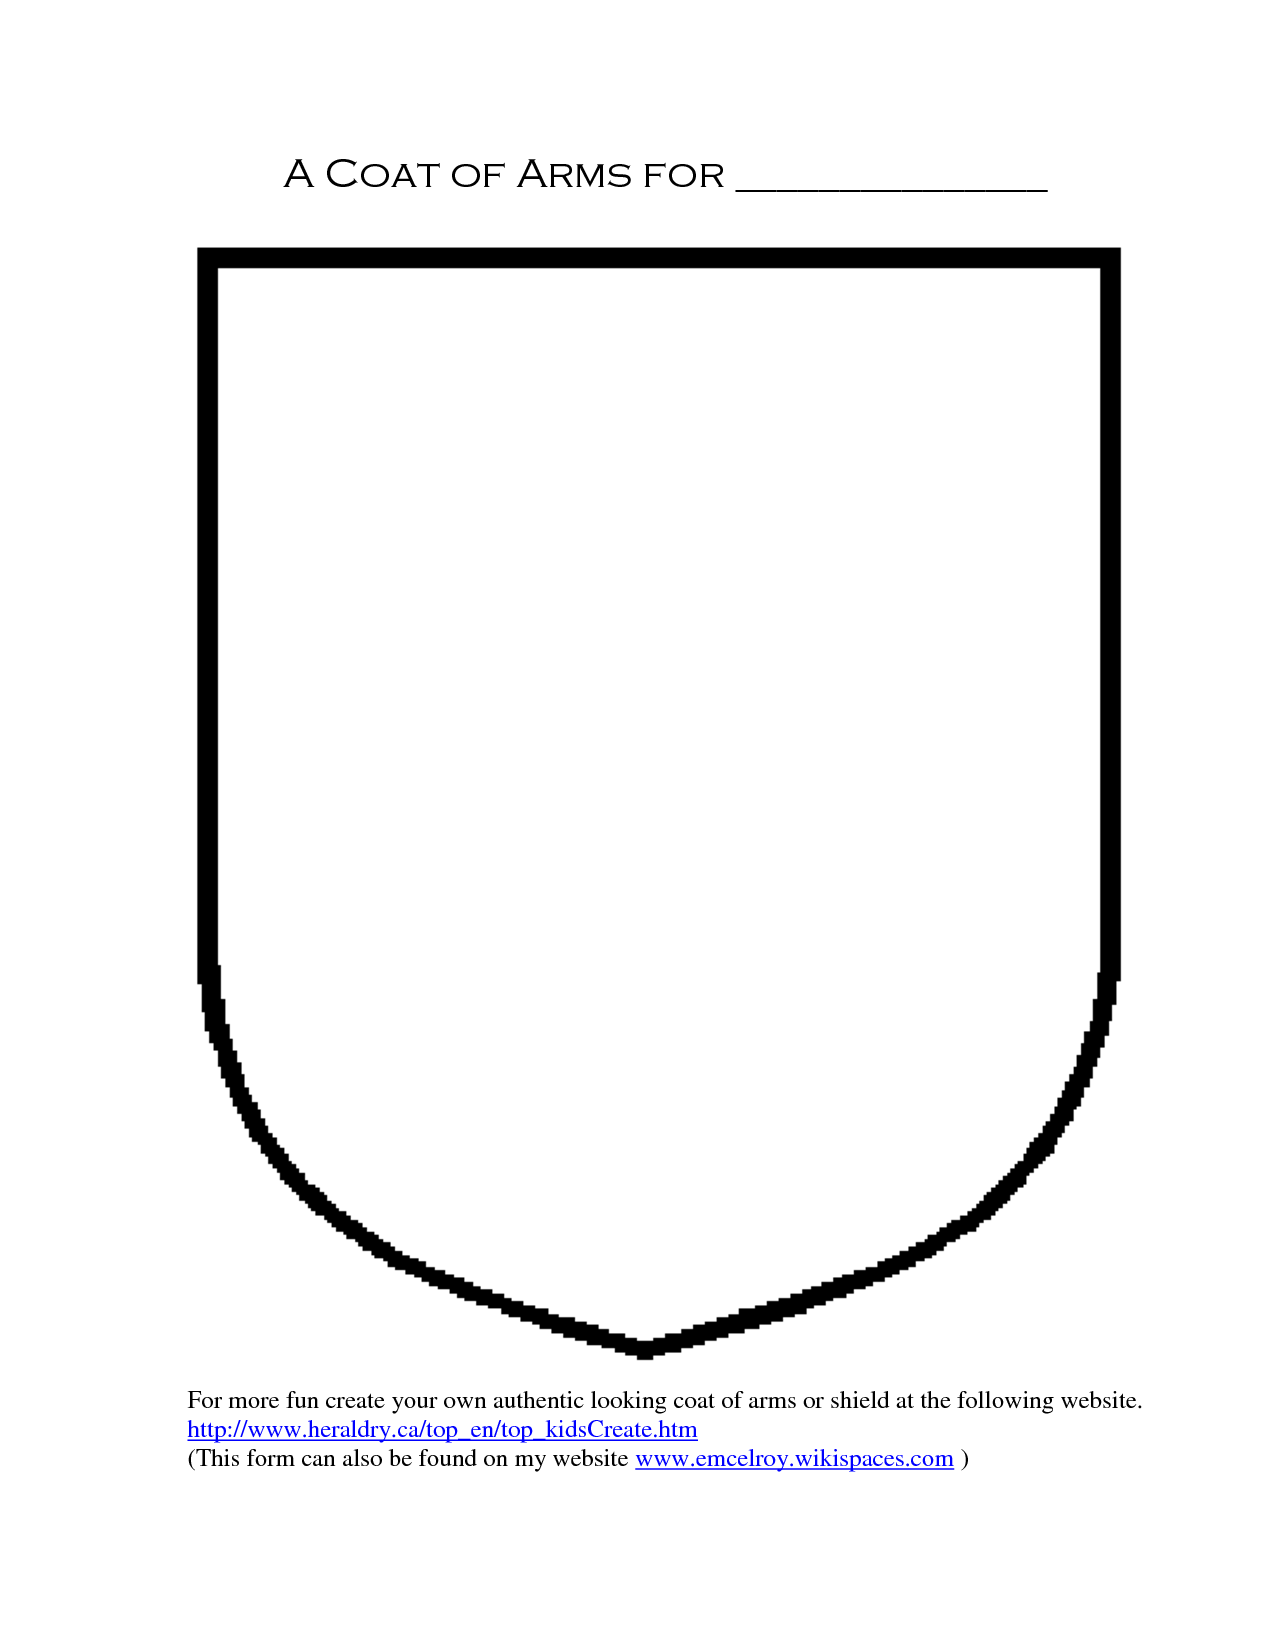 Outlines Of Coat Of Arms